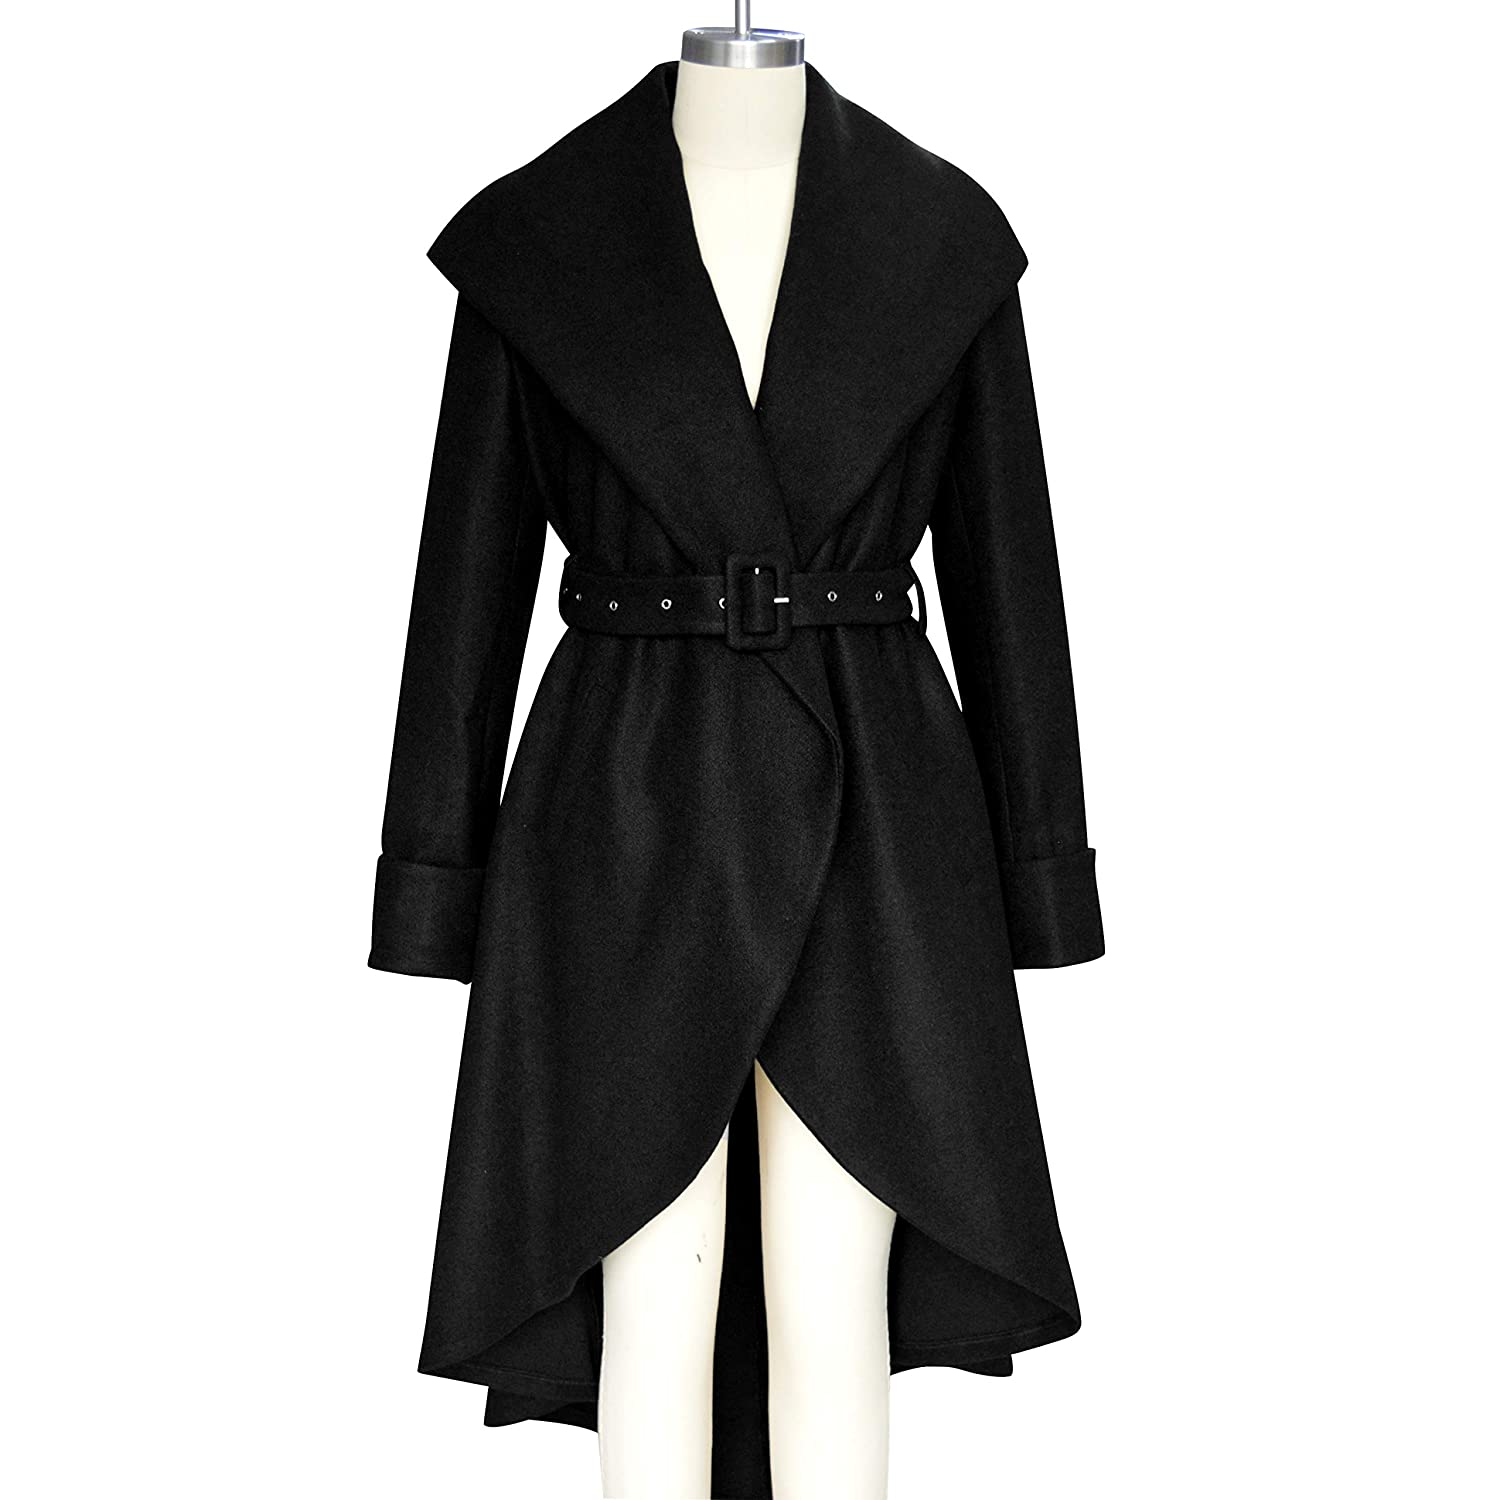 SAUKOLE Womens Winter Wool Trench Coat Wrap Large Collar High Low Jacket Outwear with Belt